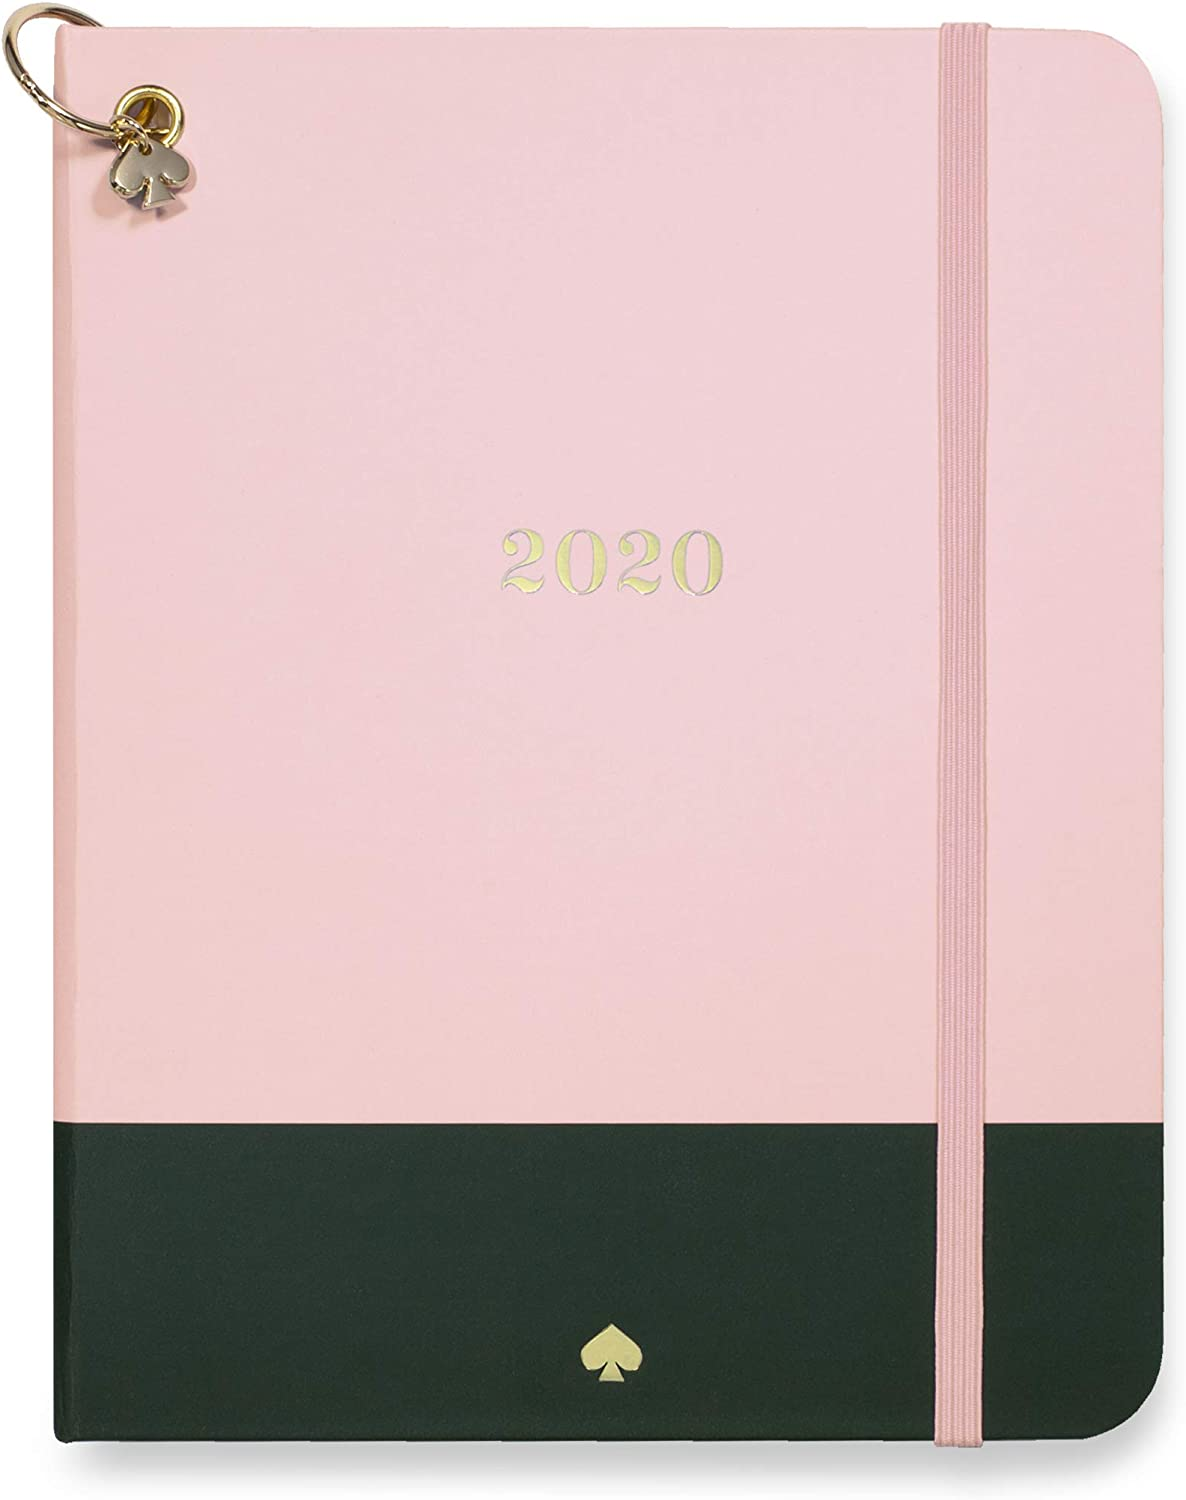 """Kate Spade New York 12 Month Medium Hardcover Annual Planner, January 2020 – December 2020 with Daily, Weekly, Monthly Spreads, 7.5"""" x 5"""", Color Block"""